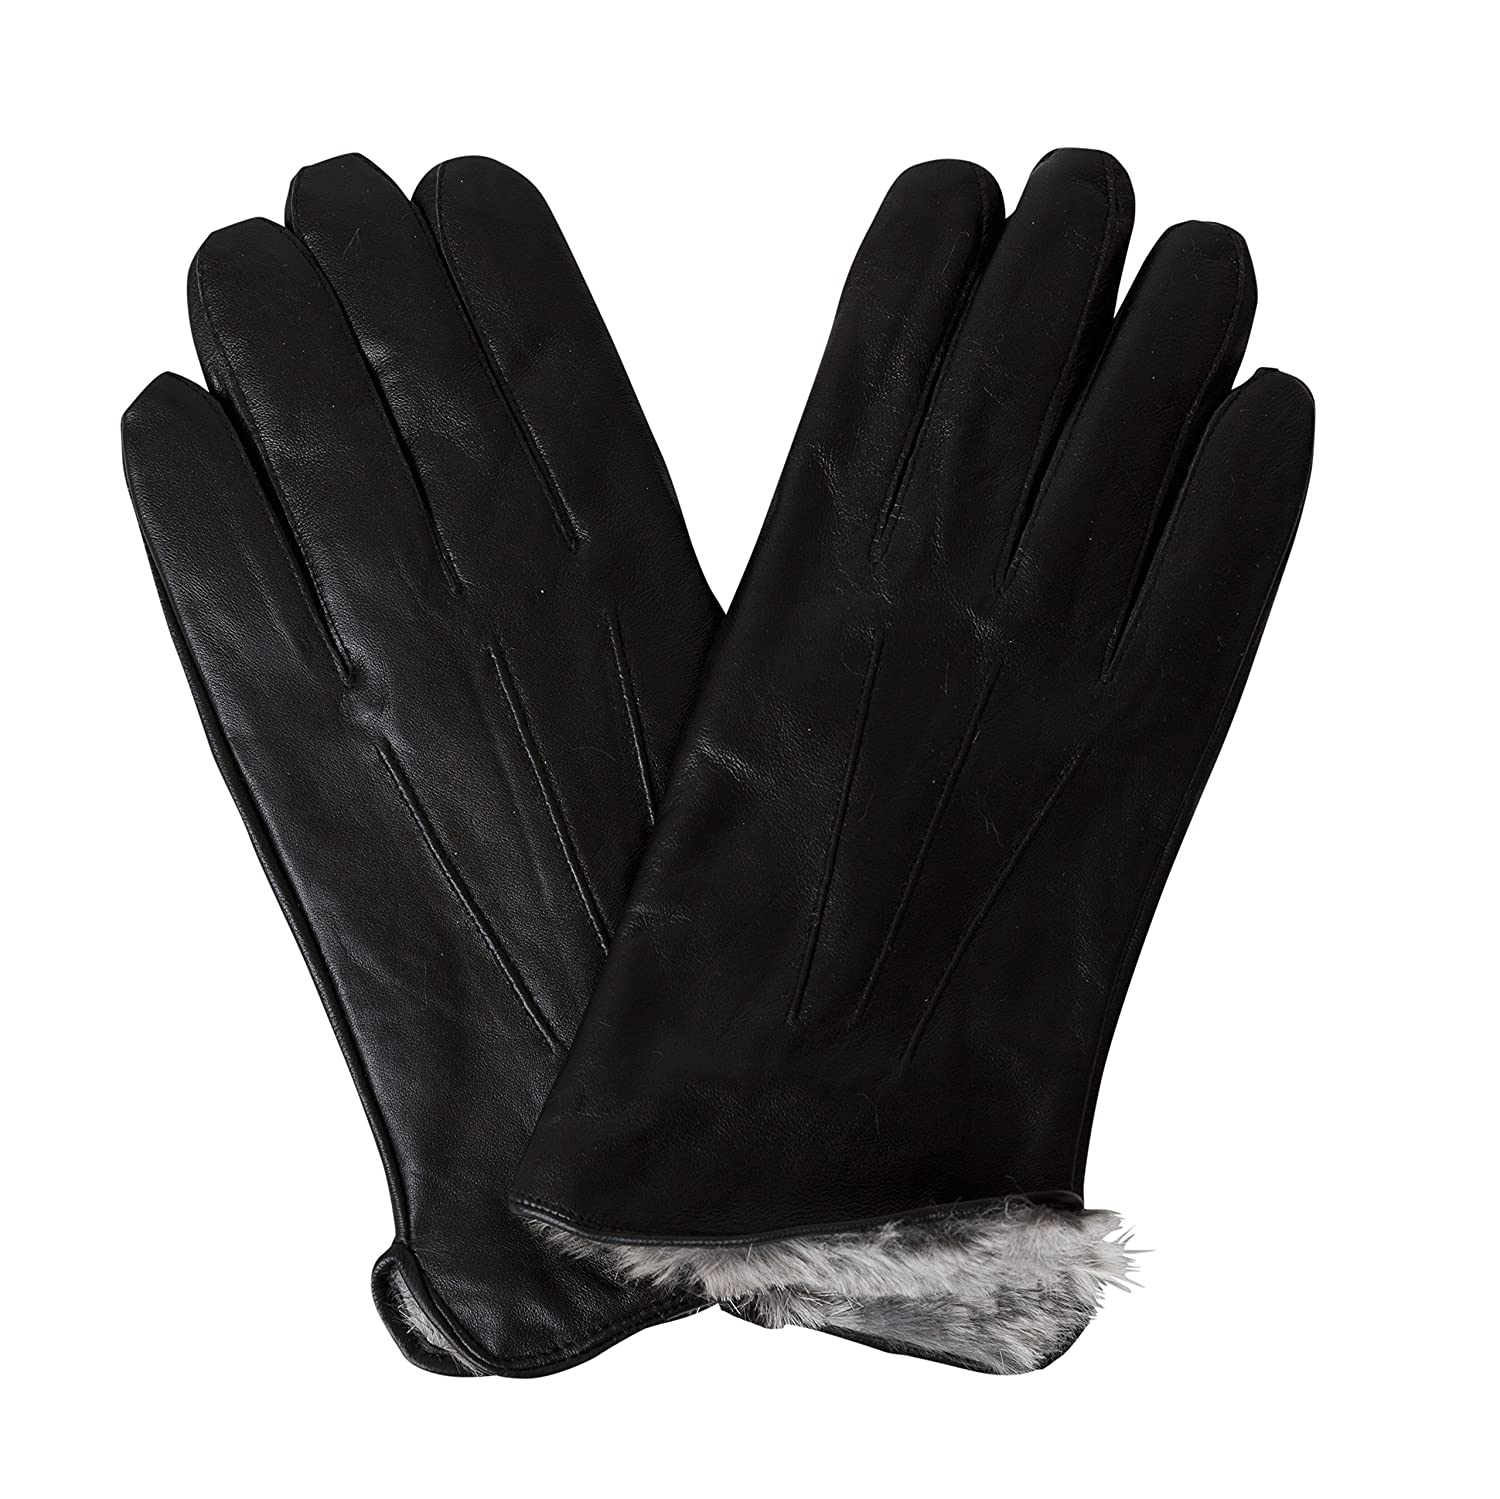 Black leather gloves with fur - Men S Luxury Rabbit Fur Lined Genuine Butter Soft Black Leather Gloves Small At Amazon Men S Clothing Store